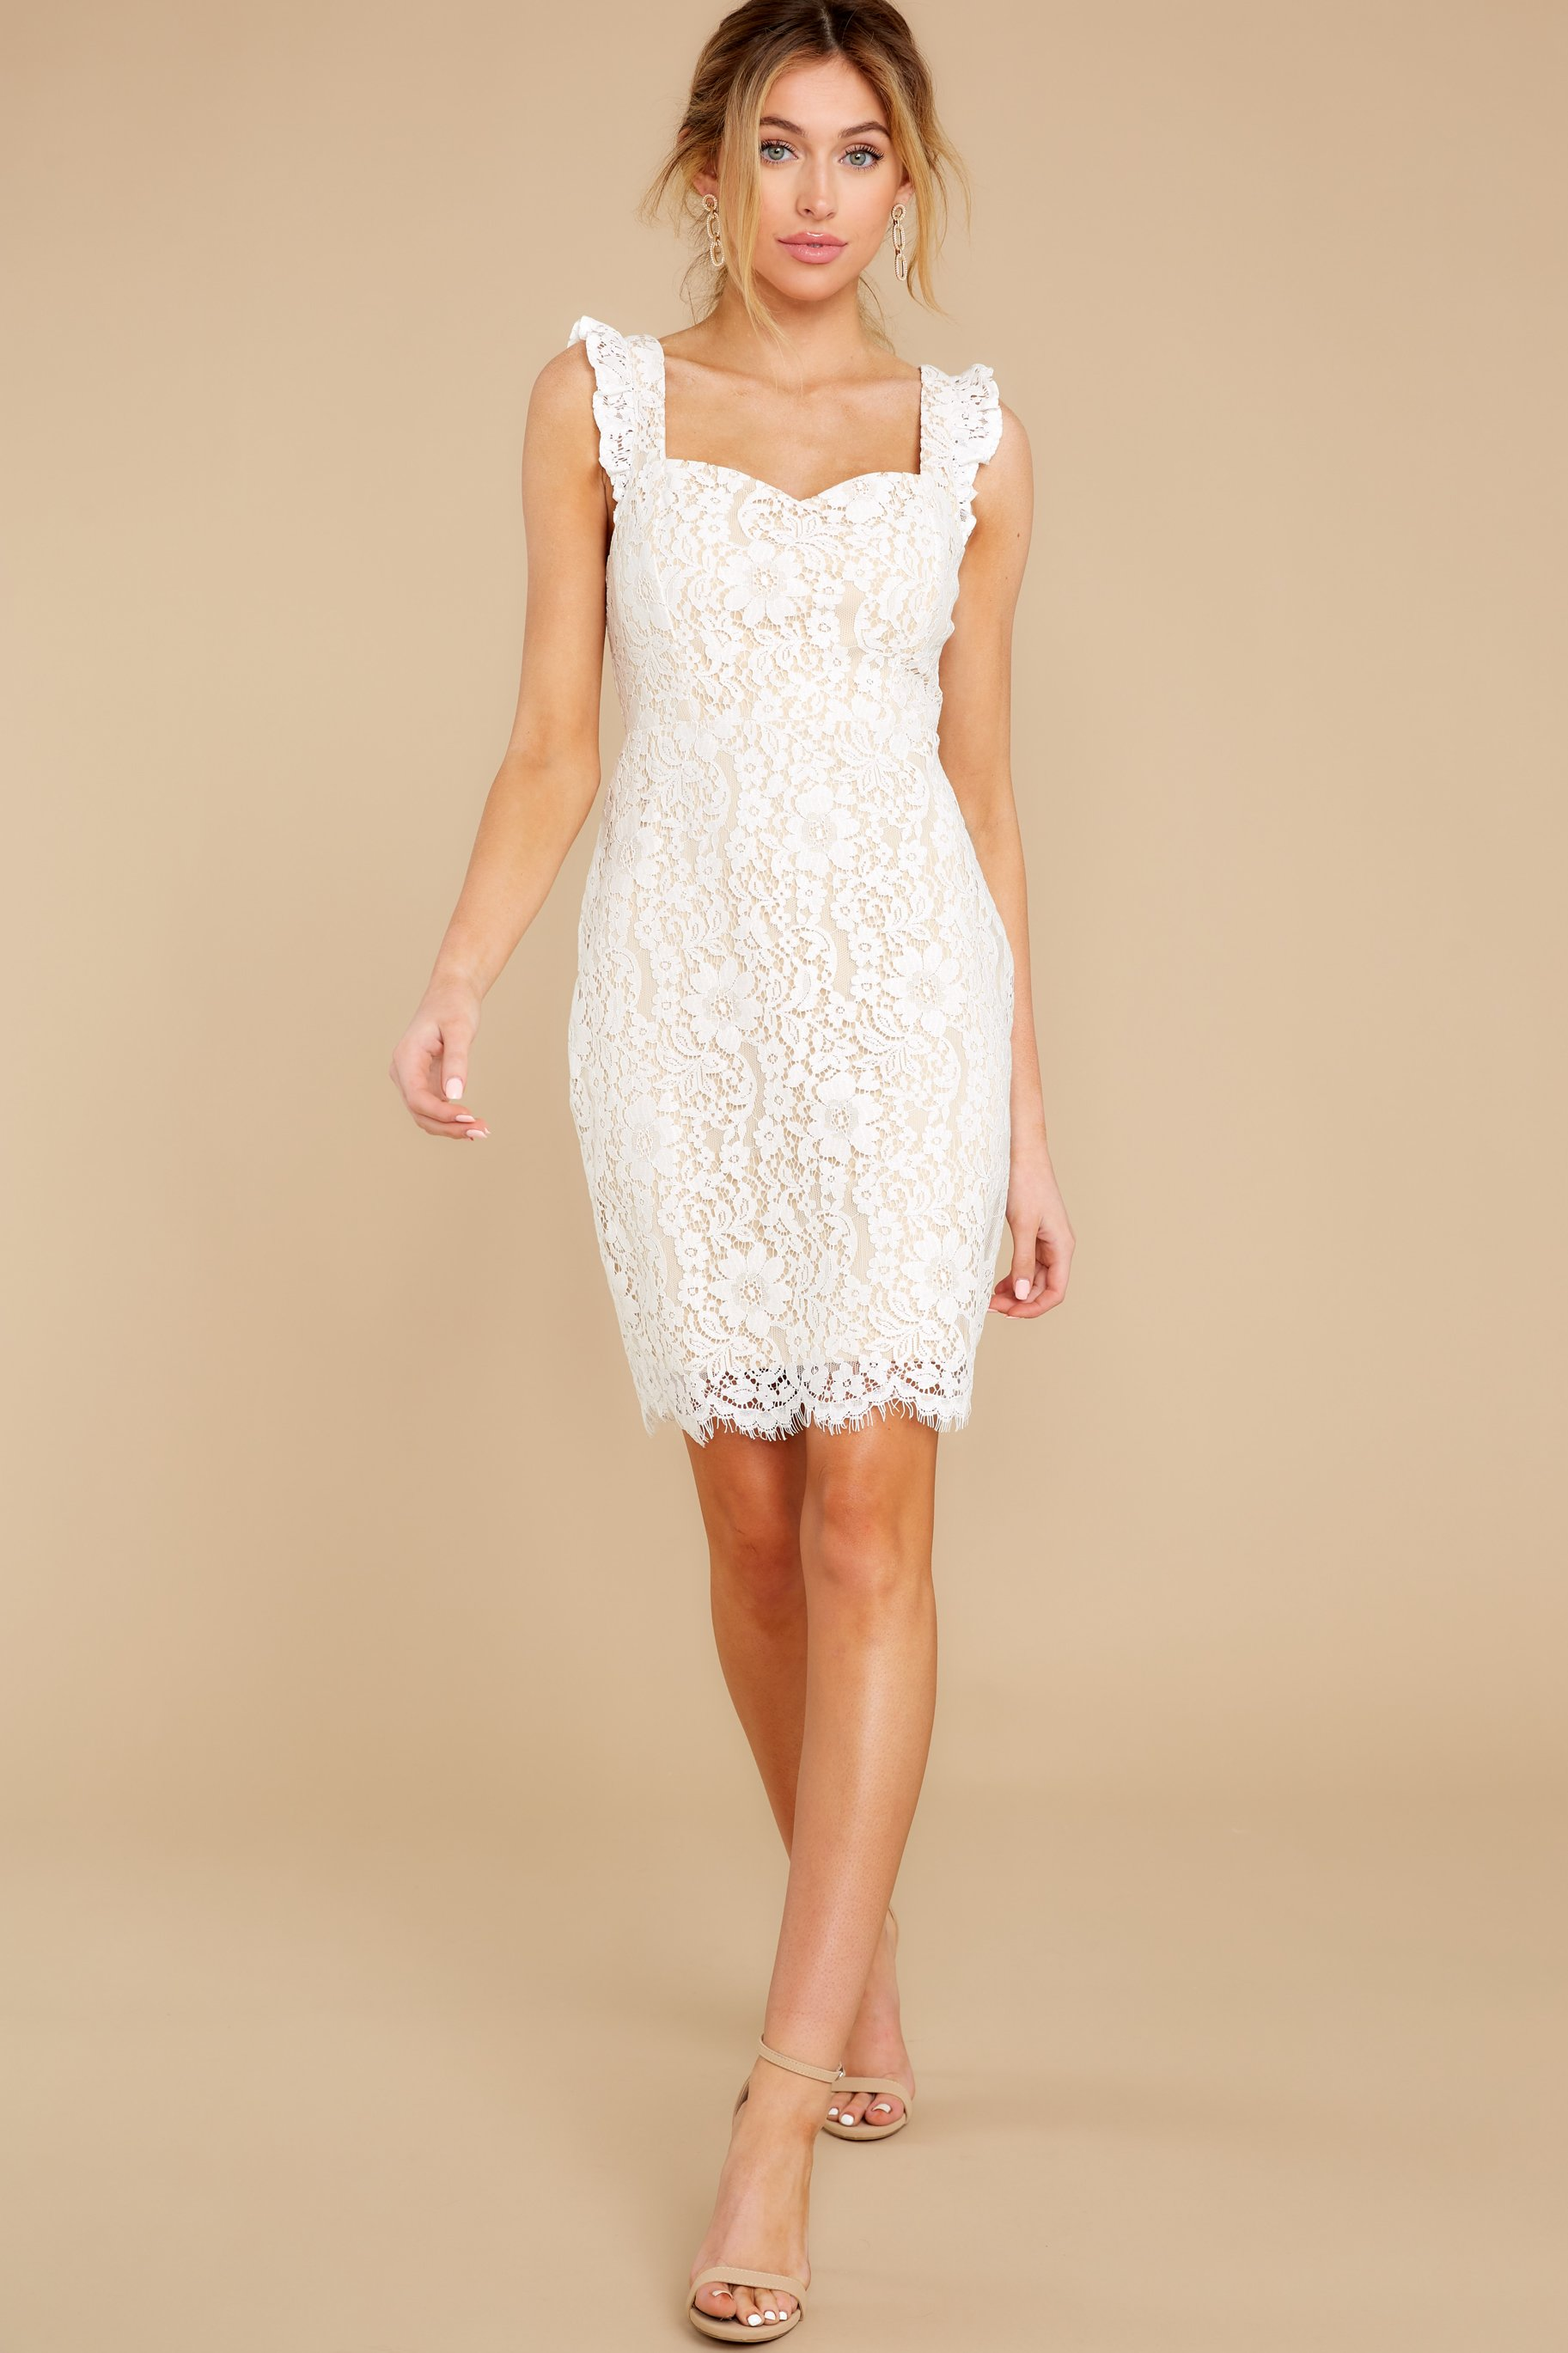 court house wedding dresses in 2020 Lace white dress